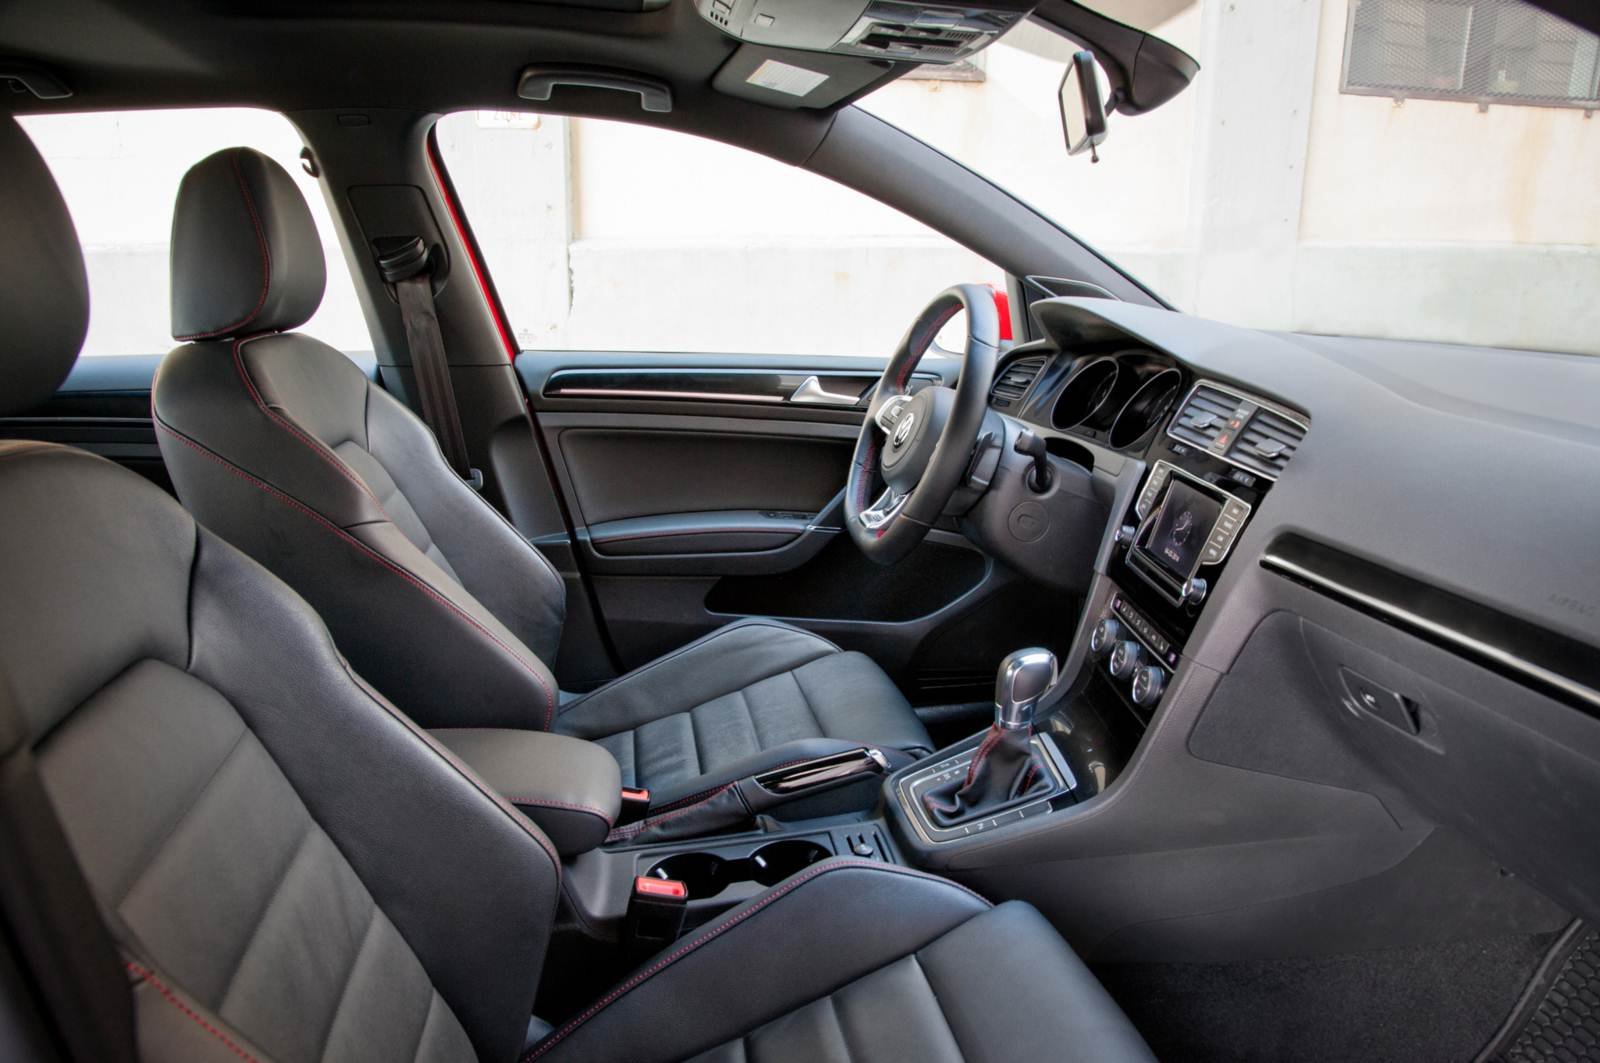 VW Golf GTI EUA - interior